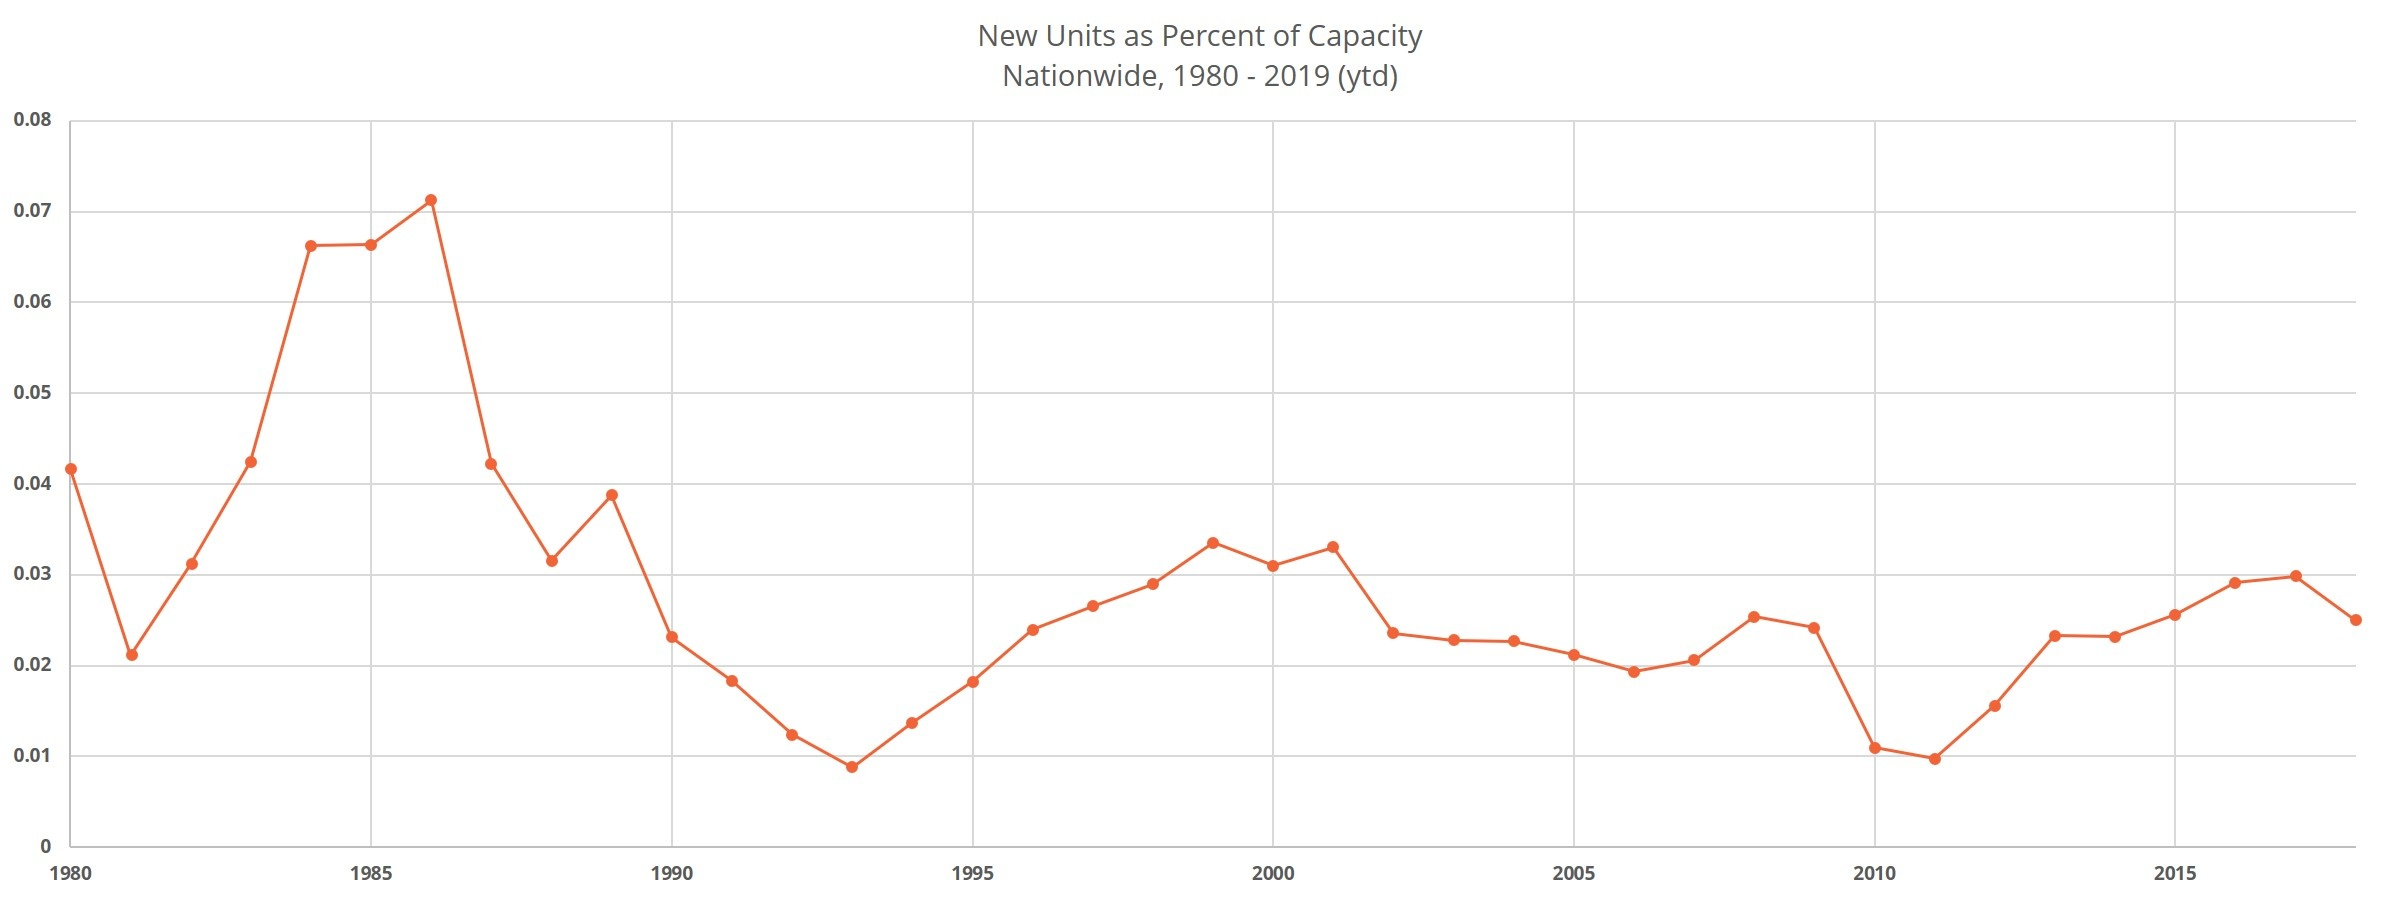 New Units as a Percent of Capacity Nationwide 1980 - 2019